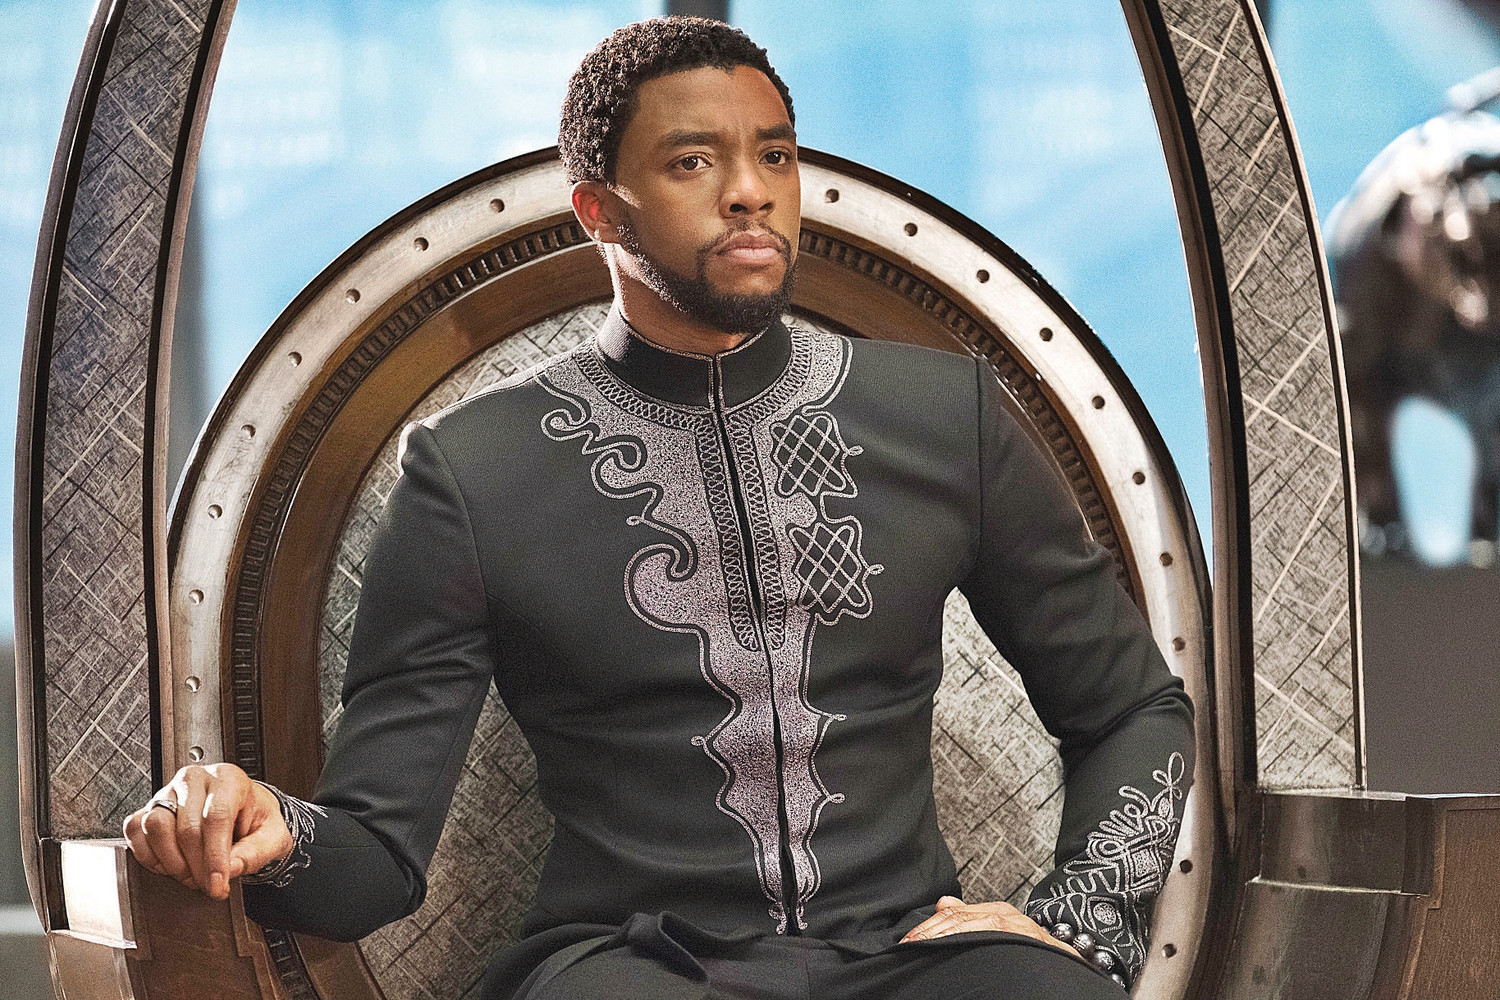 T'Challa son of T'Chaka wearing the coolest outfit that'll make kurta designers T'Chabar.